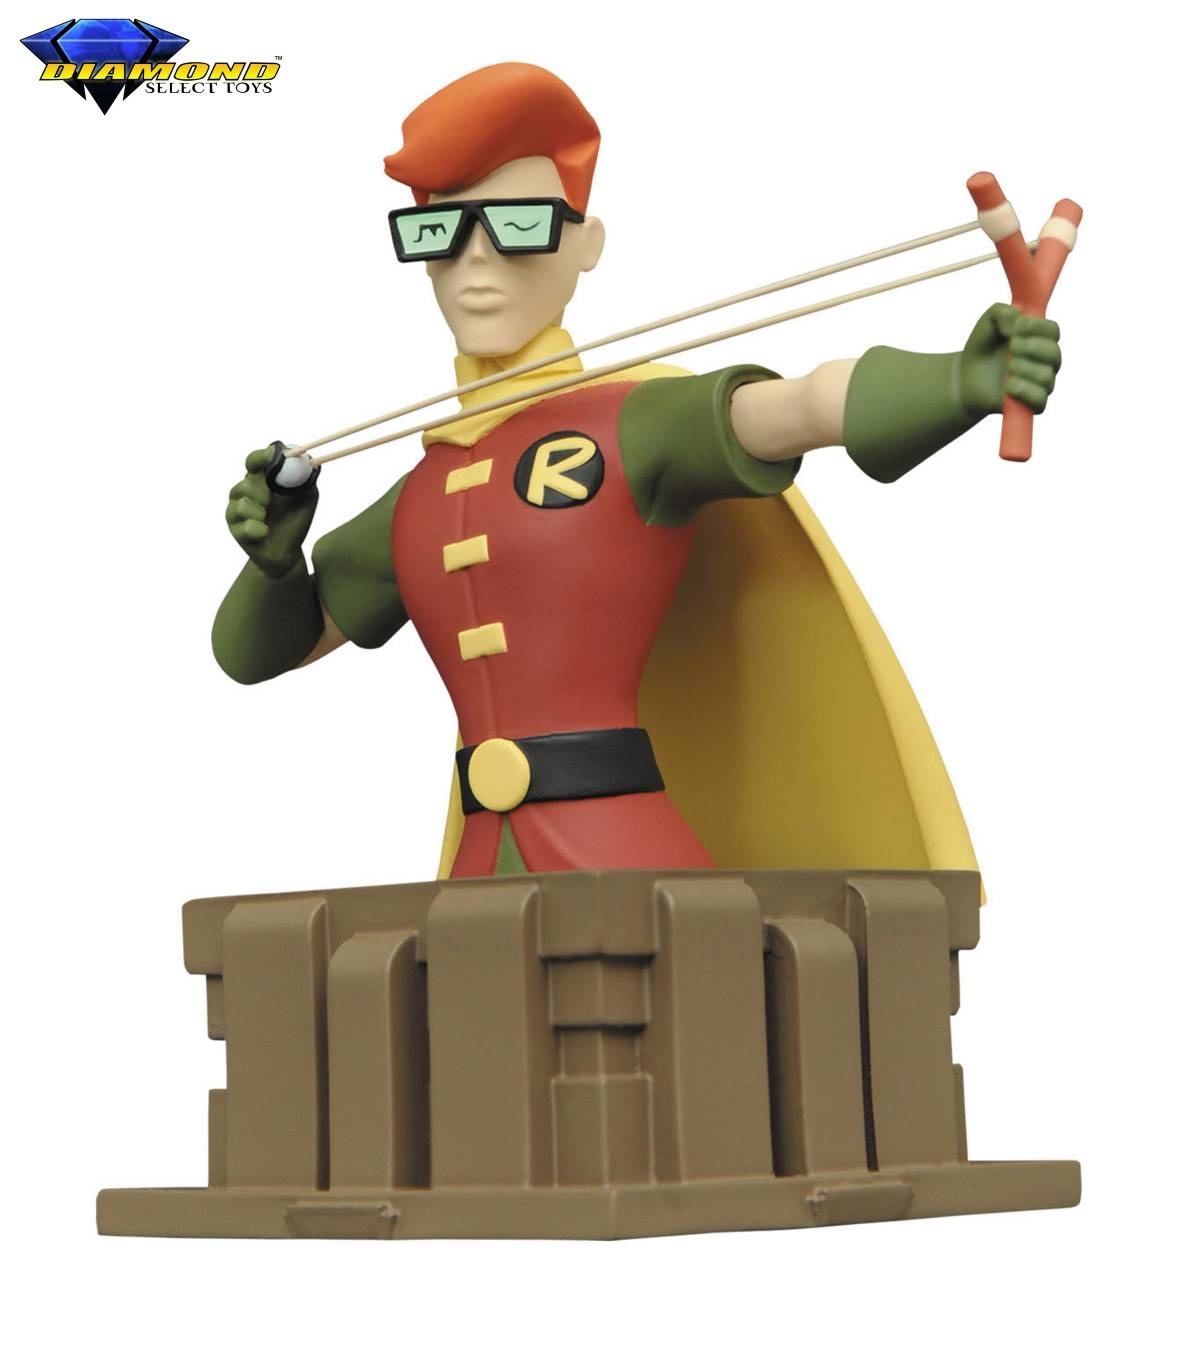 Diamond DC Comics Batman Animated Series Carrie Kelly Robin